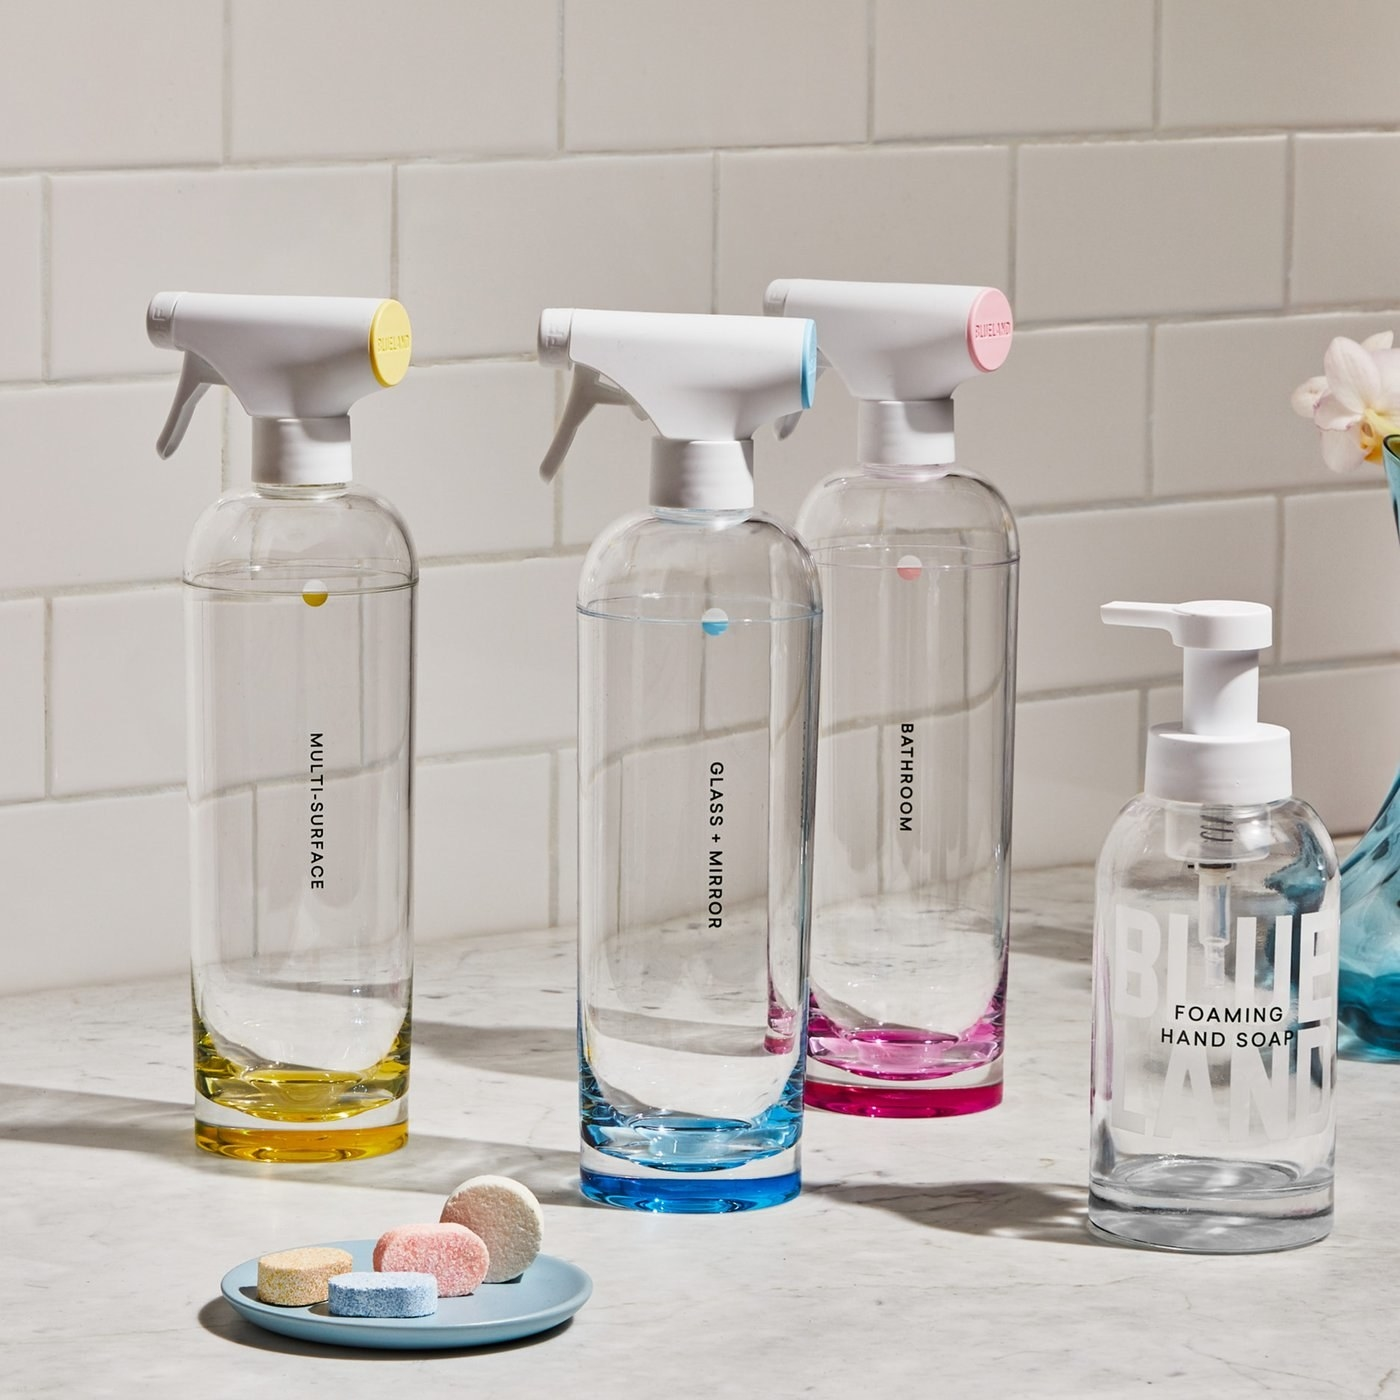 the cleaning kit of three different clear bottles